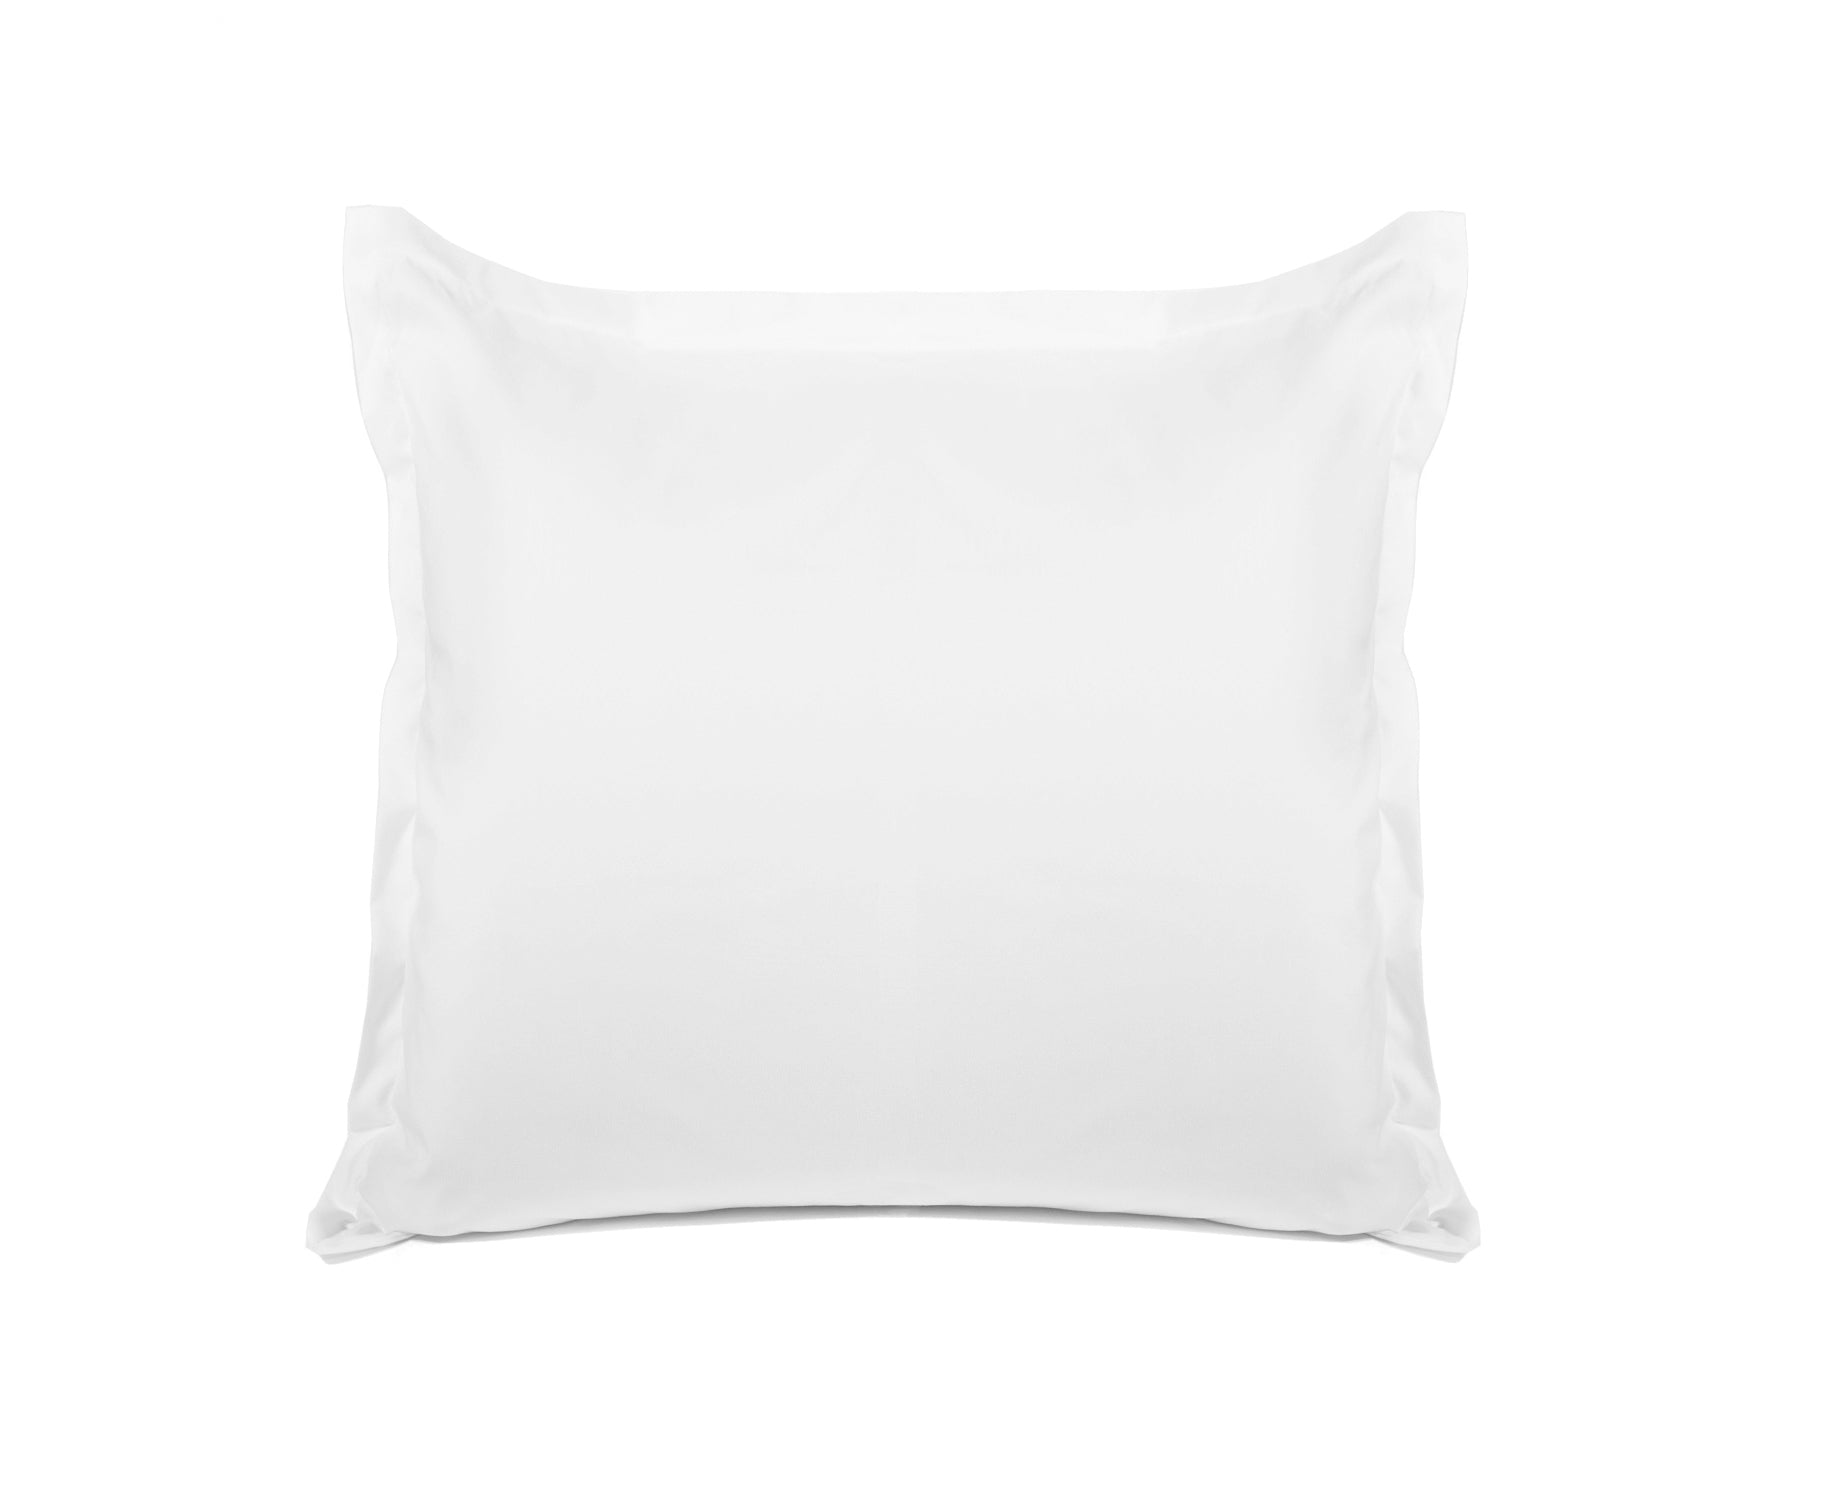 Personalized Name Euro Sham, Di Lewis Personalized pillows